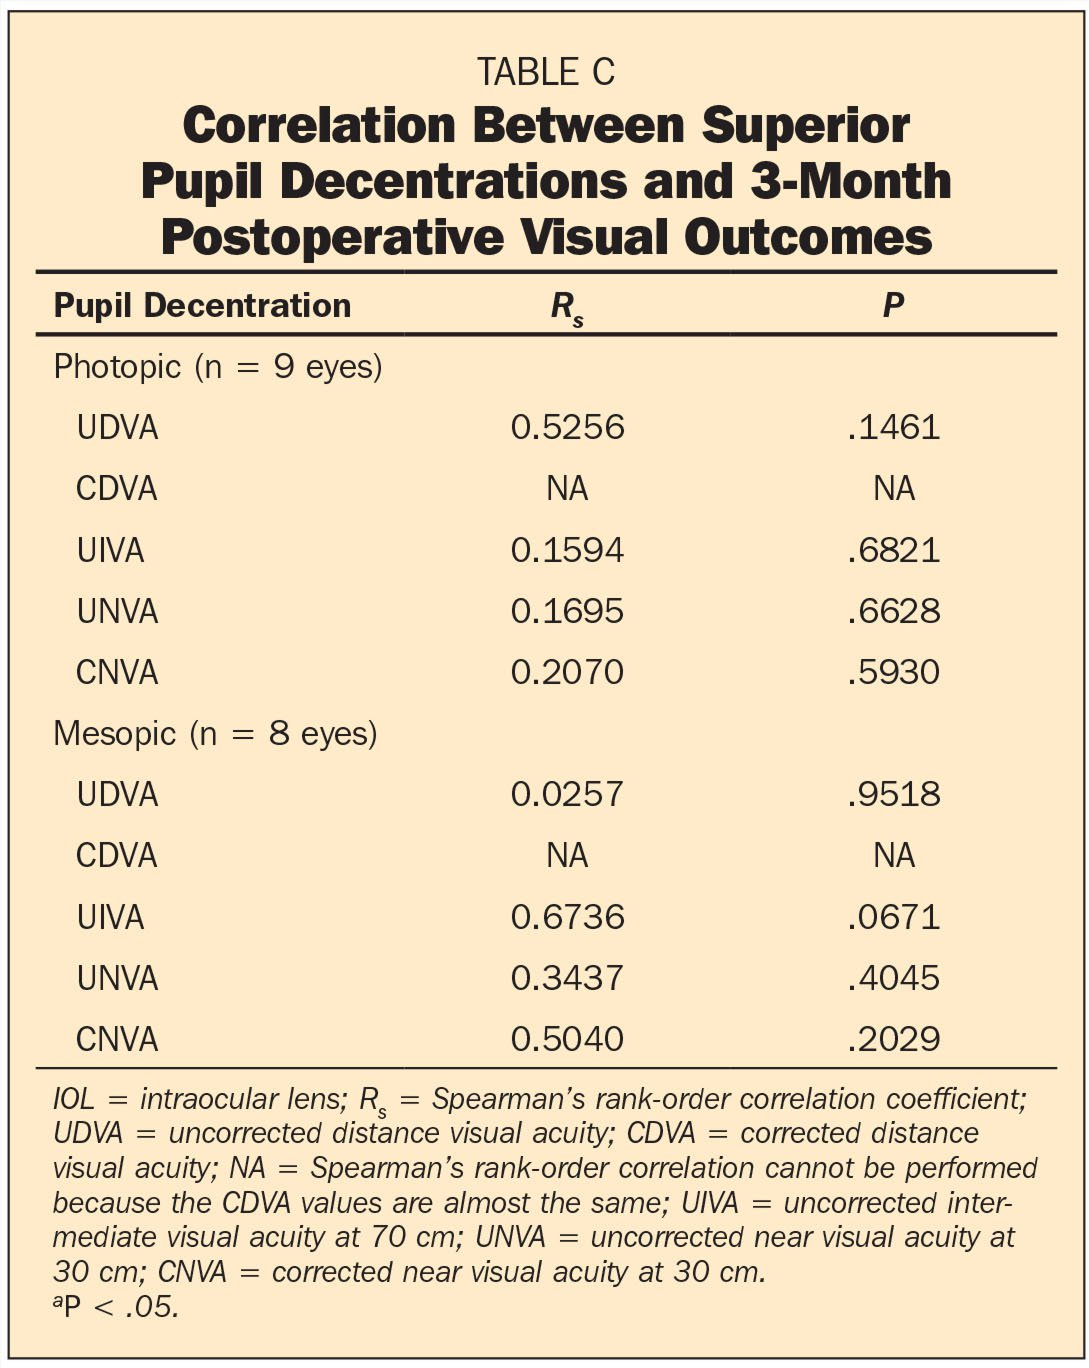 Correlation Between Superior Pupil Decentrations and 3-Month Postoperative Visual Outcomes